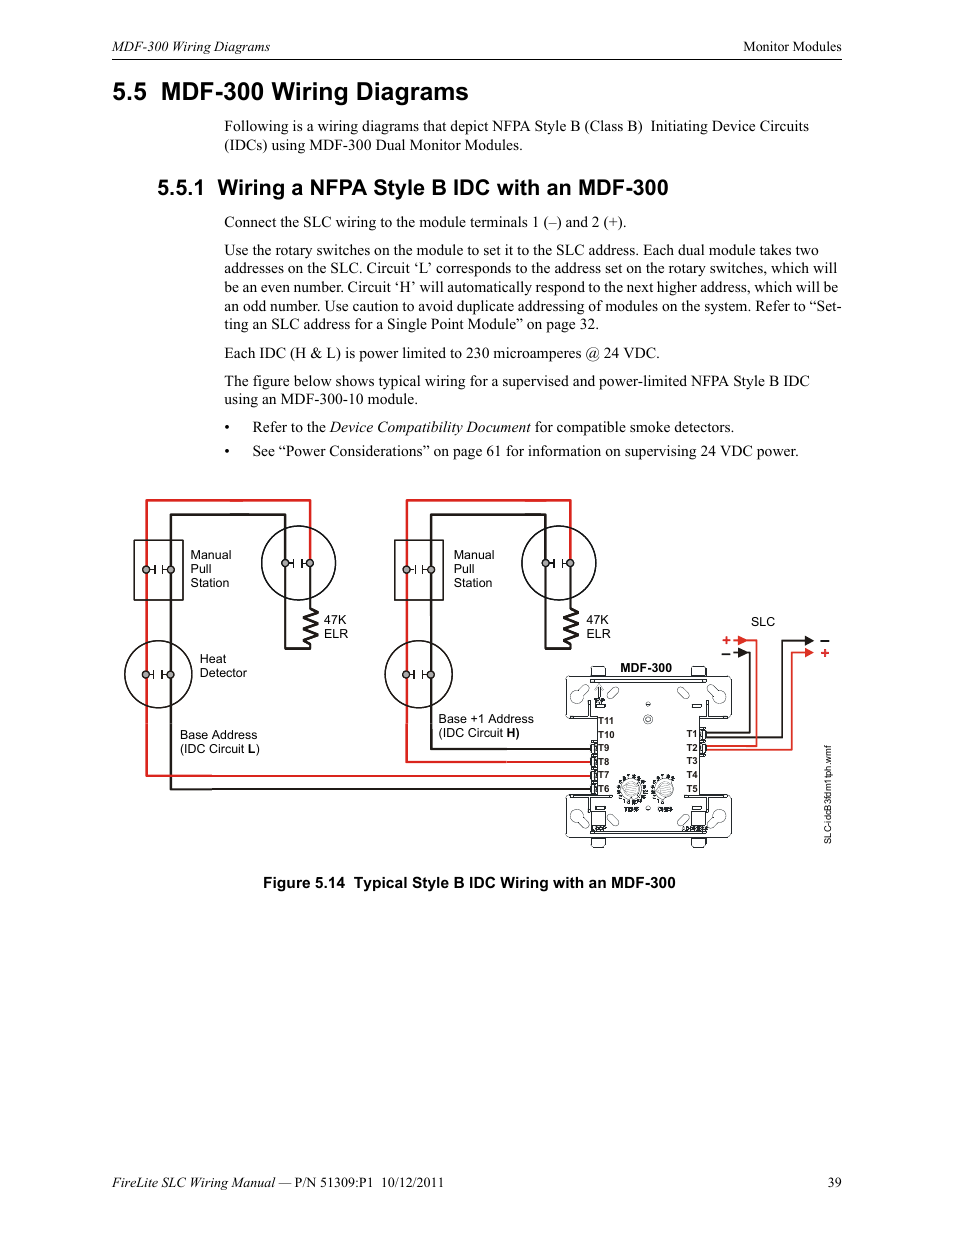 Class B Wiring Diagram Library A Fire Alarm Panel 5 Mdf 300 Diagrams 1 Nfpa Style Idc With An